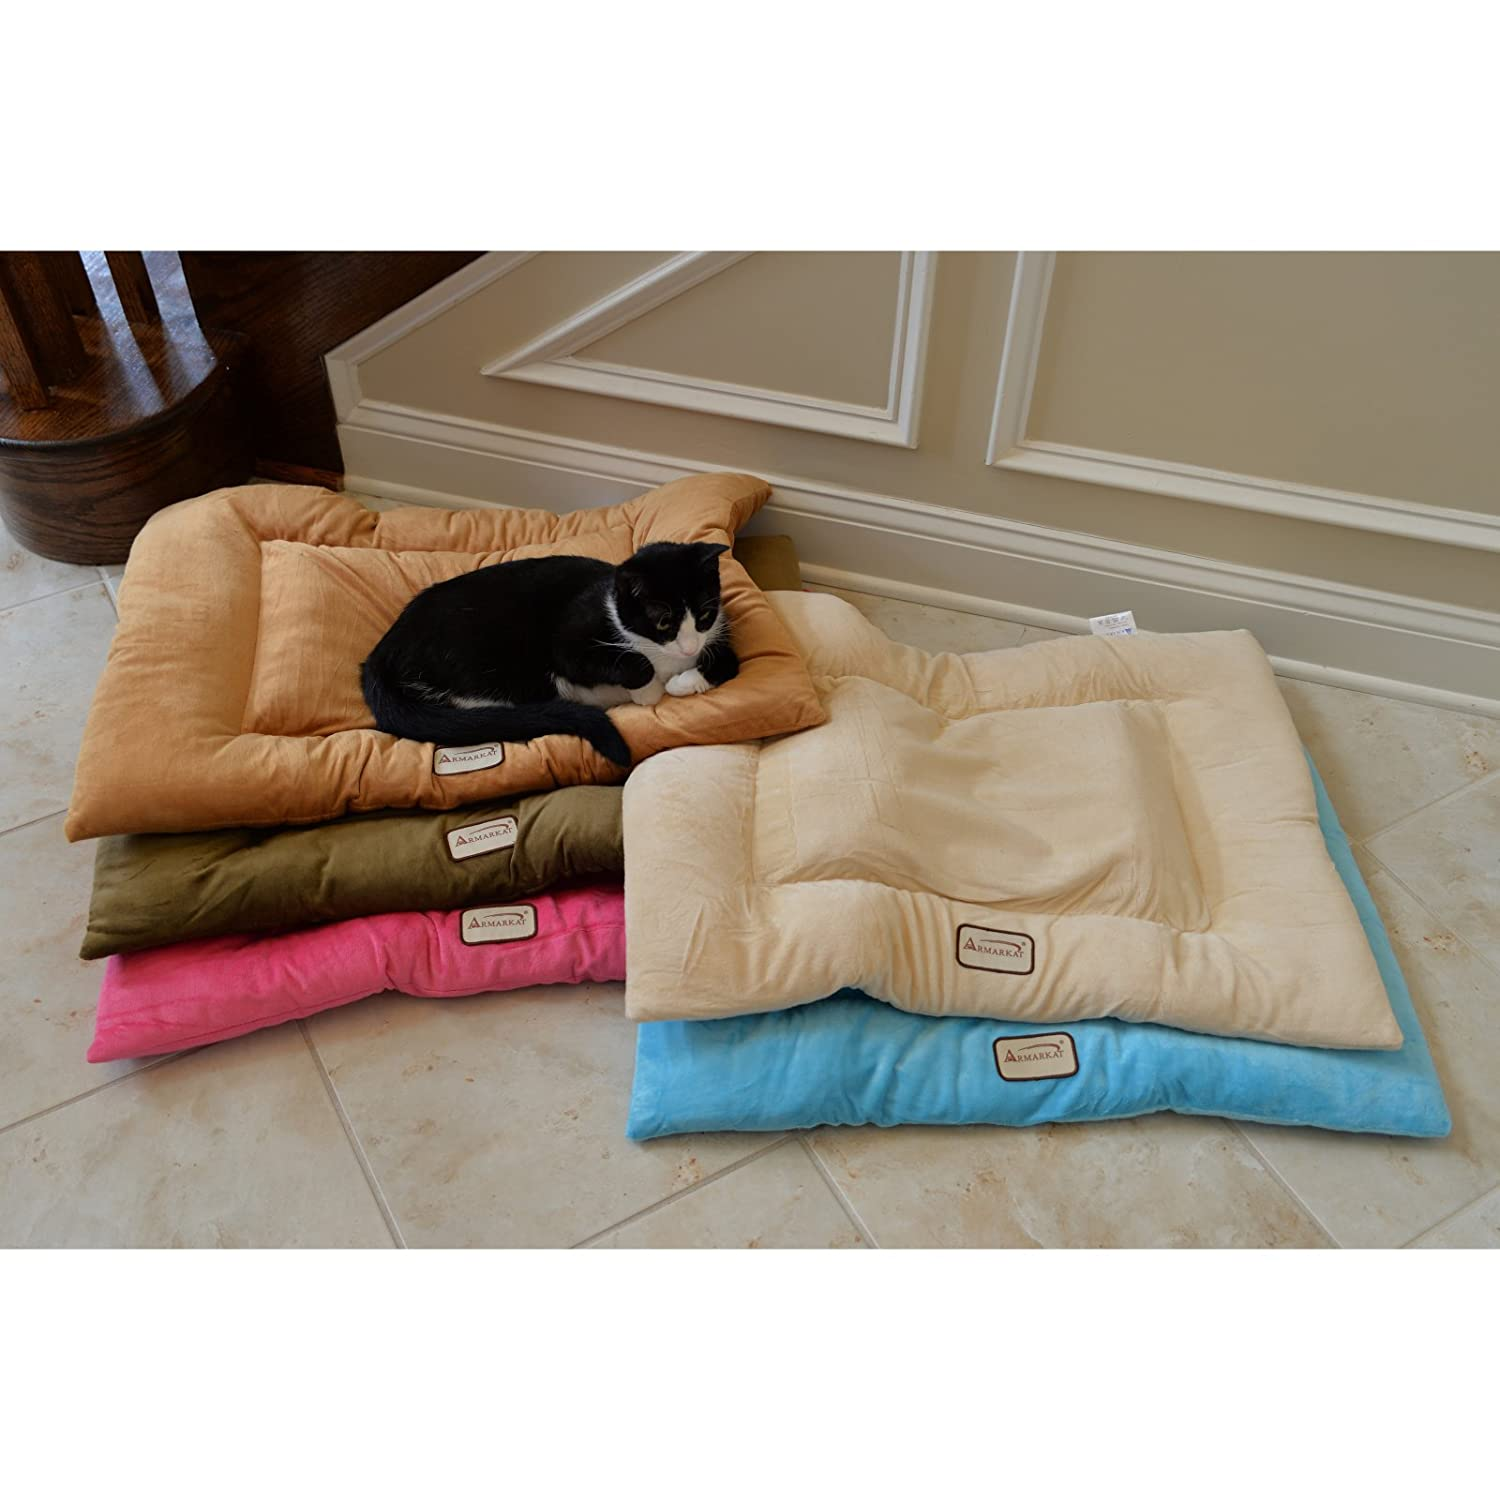 Amazon.com : Armarkat Pet Bed Mat 27-Inch by 19-Inch by 2.5-Inch M01-Medium, Beige : Crate Pad : Pet Supplies